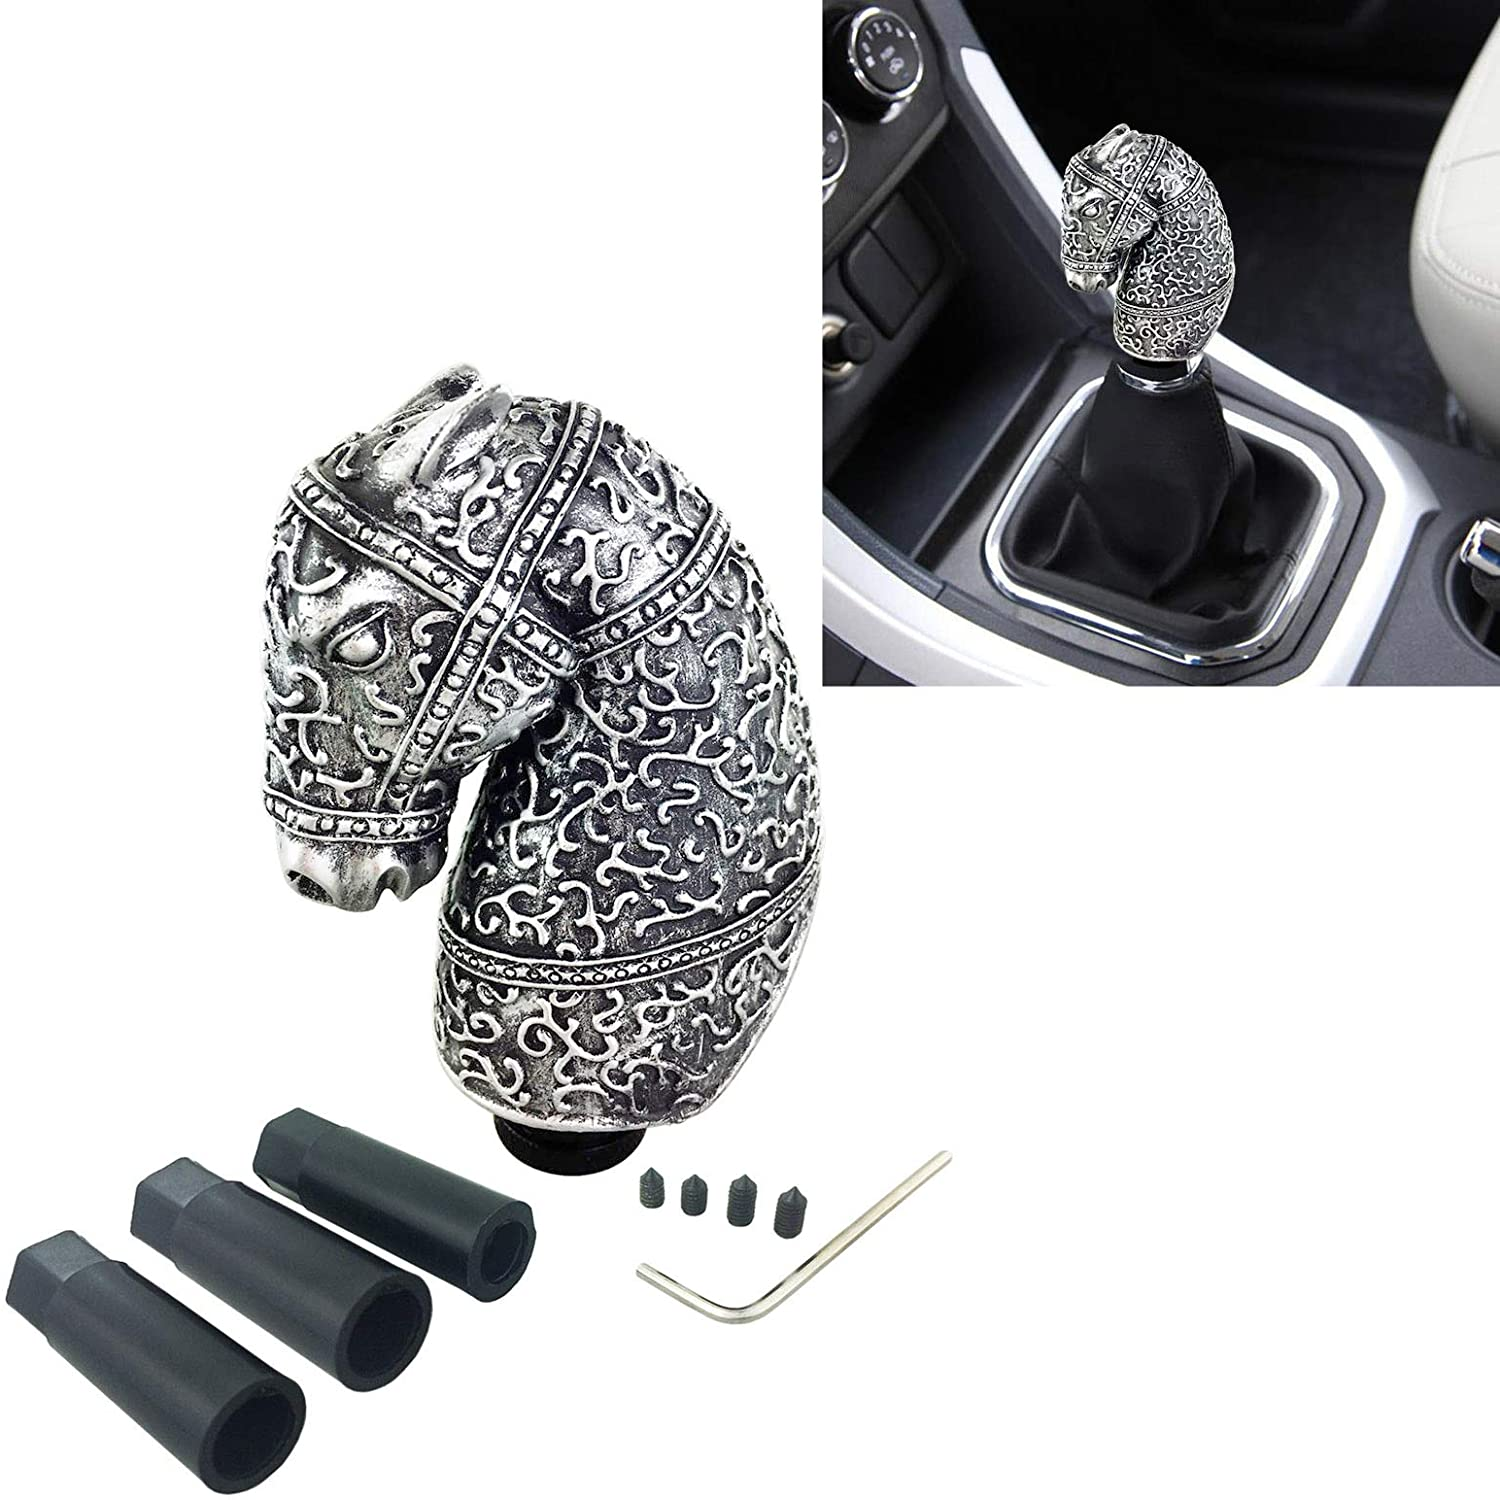 Arenbel Automatic Button Gear Shift knob Long Style Car Stick Shifting Shifter Lever Knobs fit Most Manual Vehicle Blue